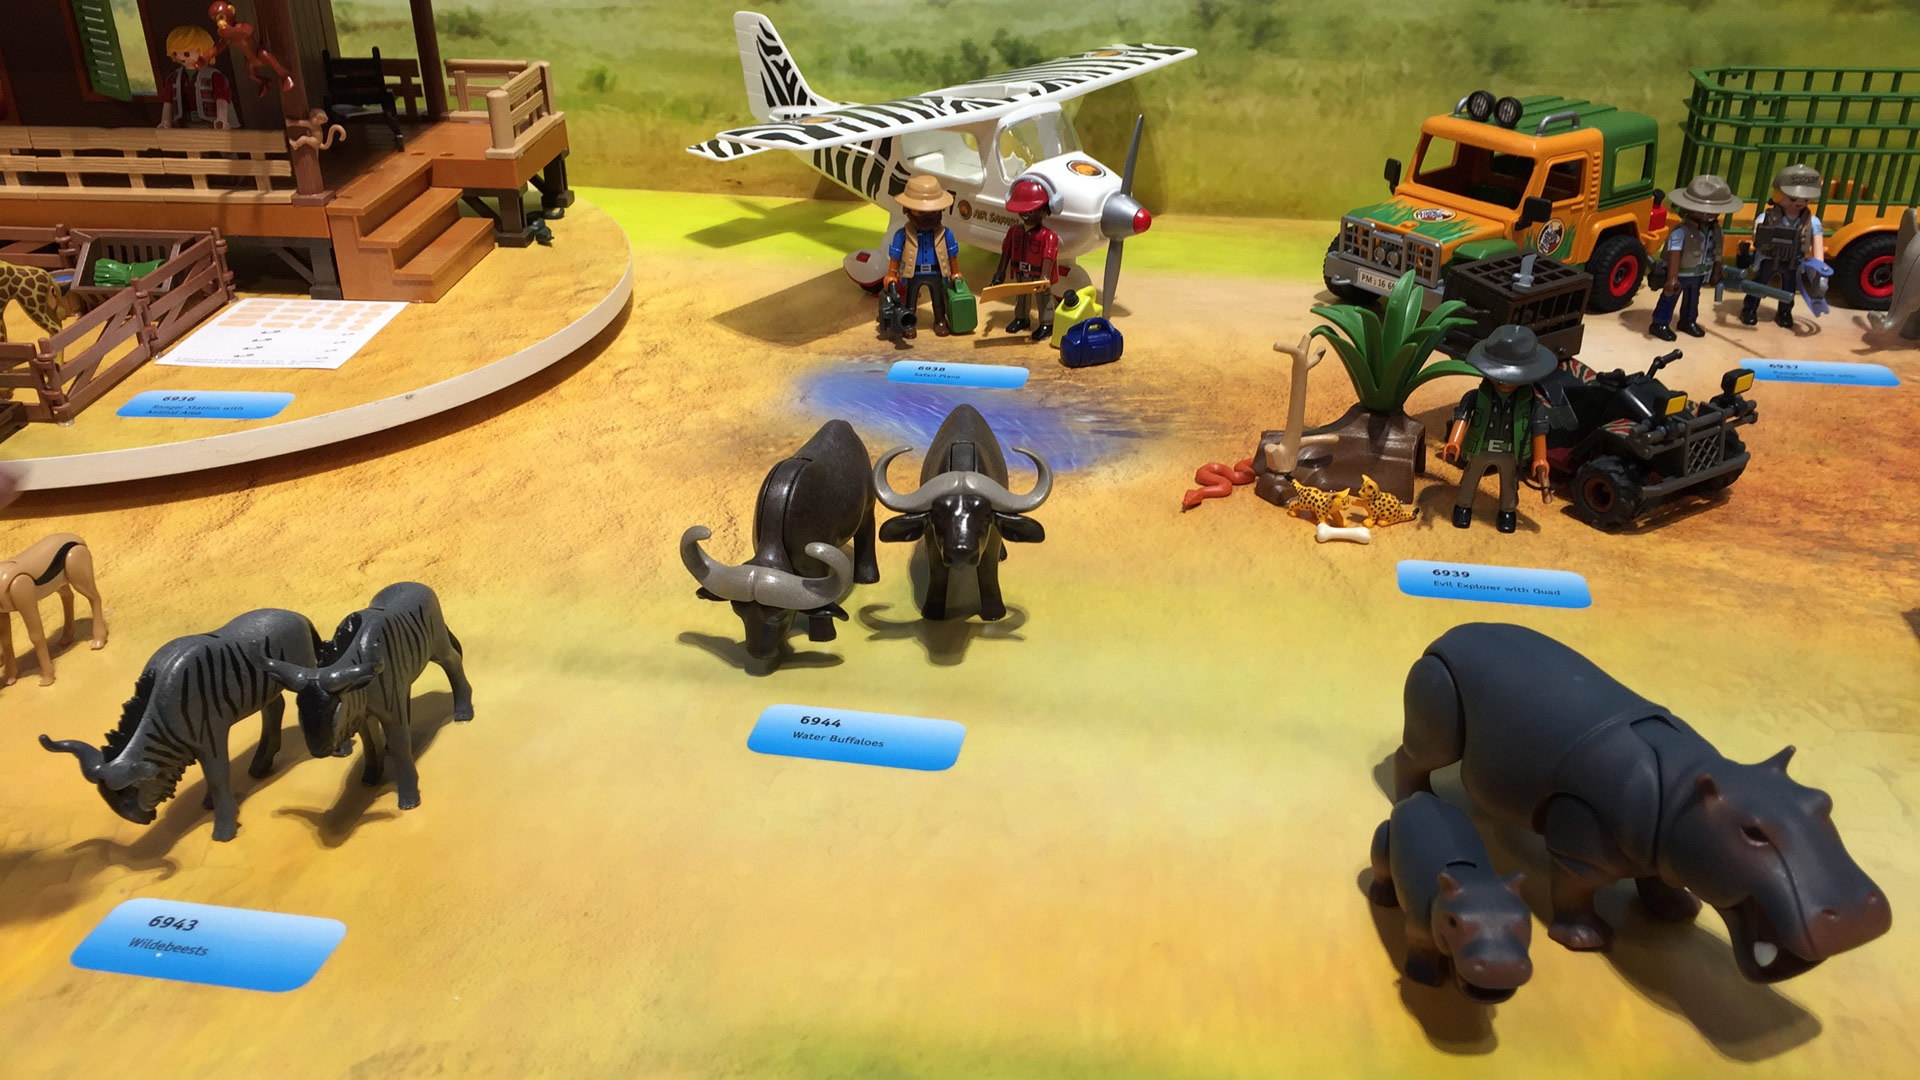 Playmobil Wildlife Sets 6943 Wildebeests, 6944 Water Buffaloes, 6945 Water Hippo with Calf, 6939 Evil Explorer with Quad at Toy Fair 2017